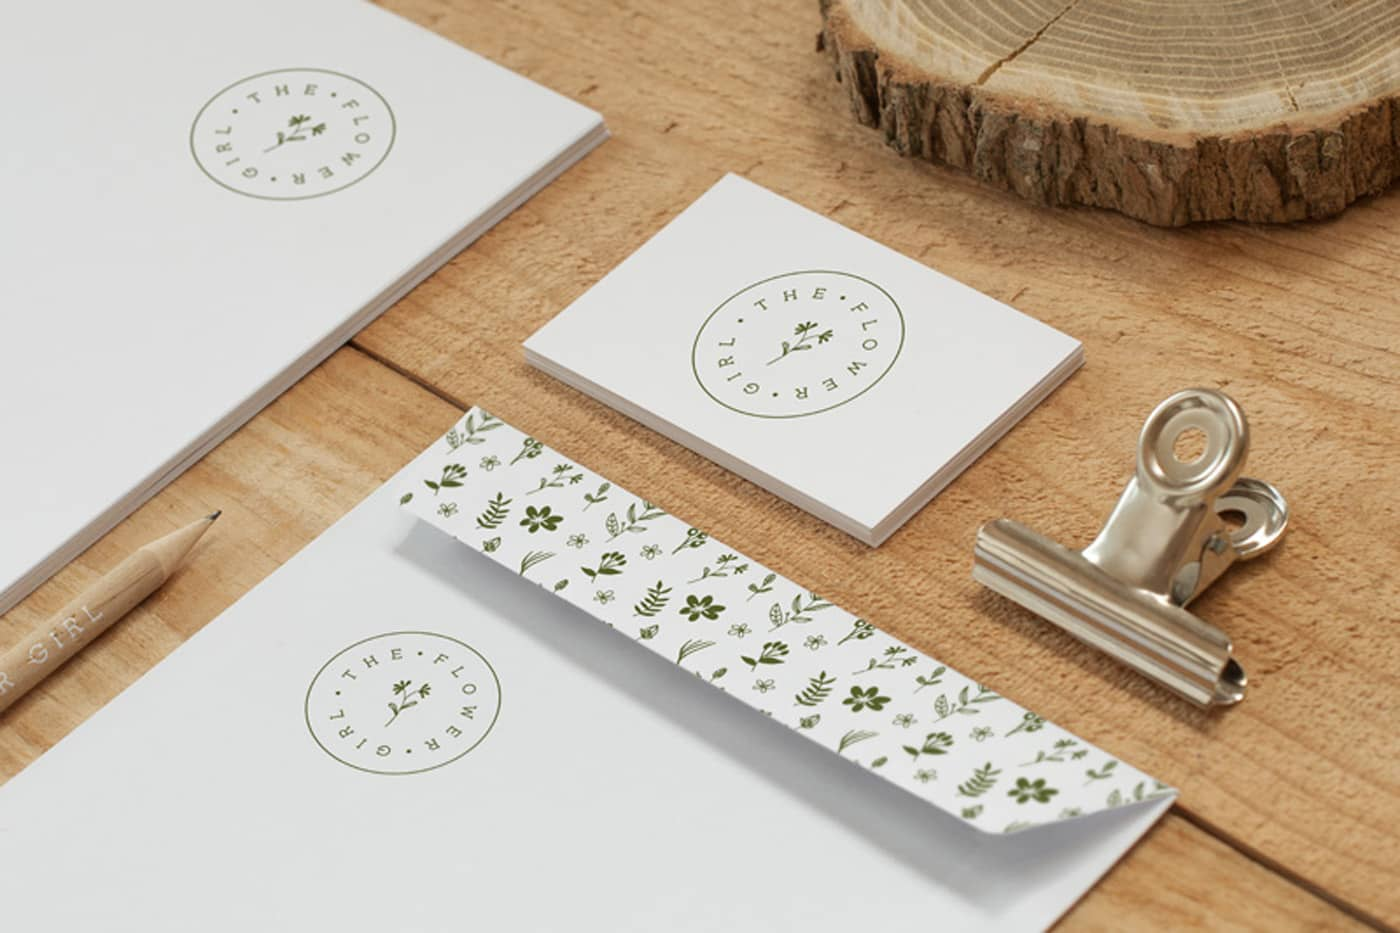 Branding project for small florist shop